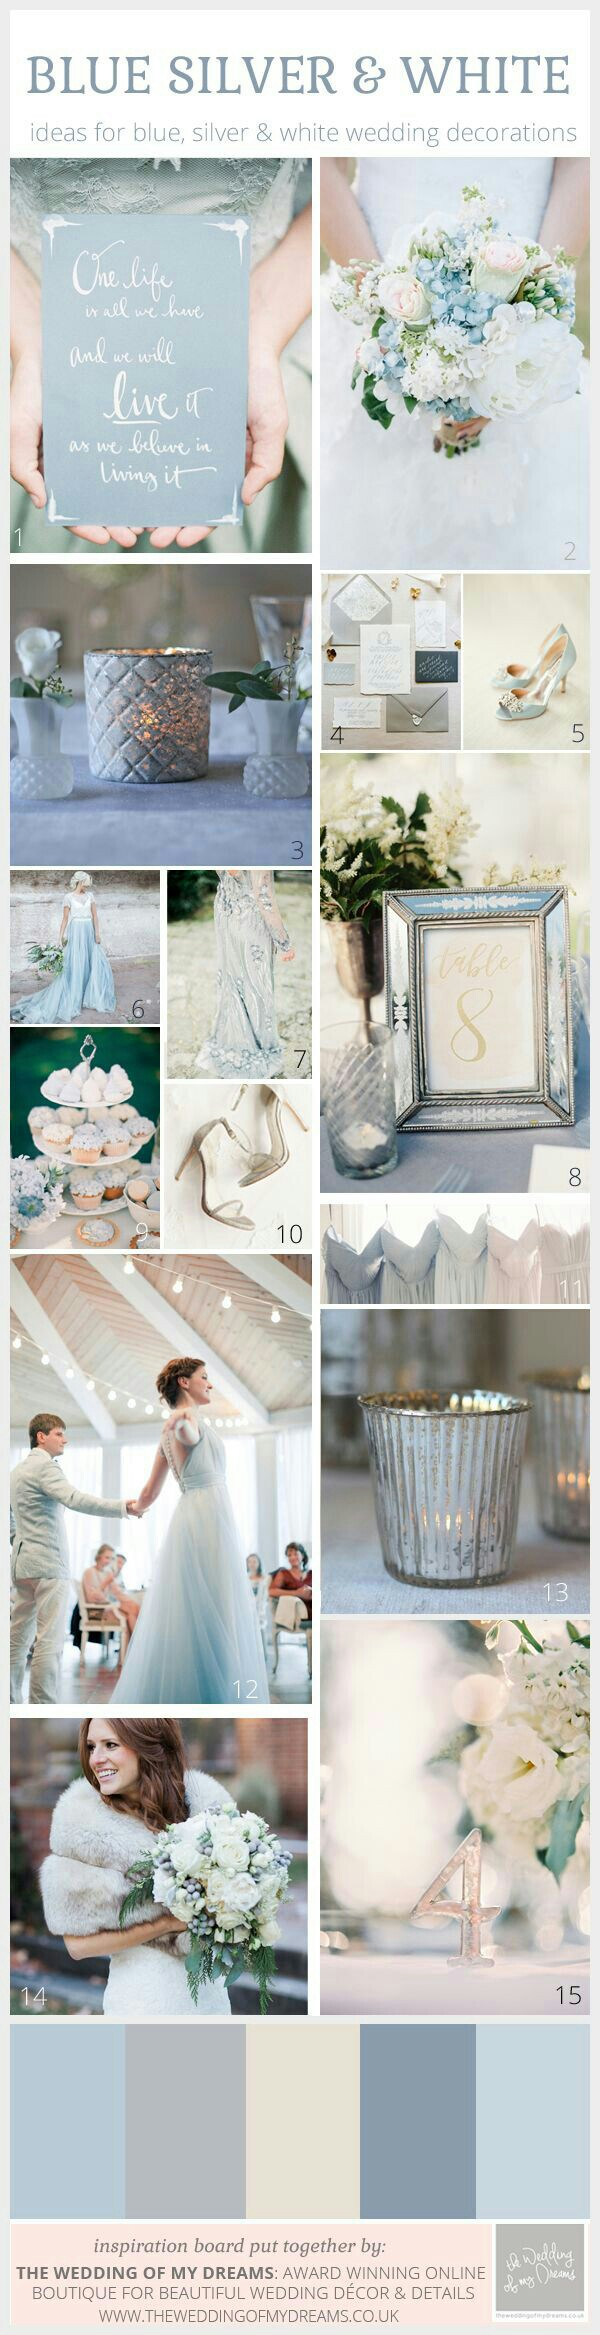 Wedding decorations lavender september 2018 Pin by Lilly King on Wedding  Pinterest  Wedding